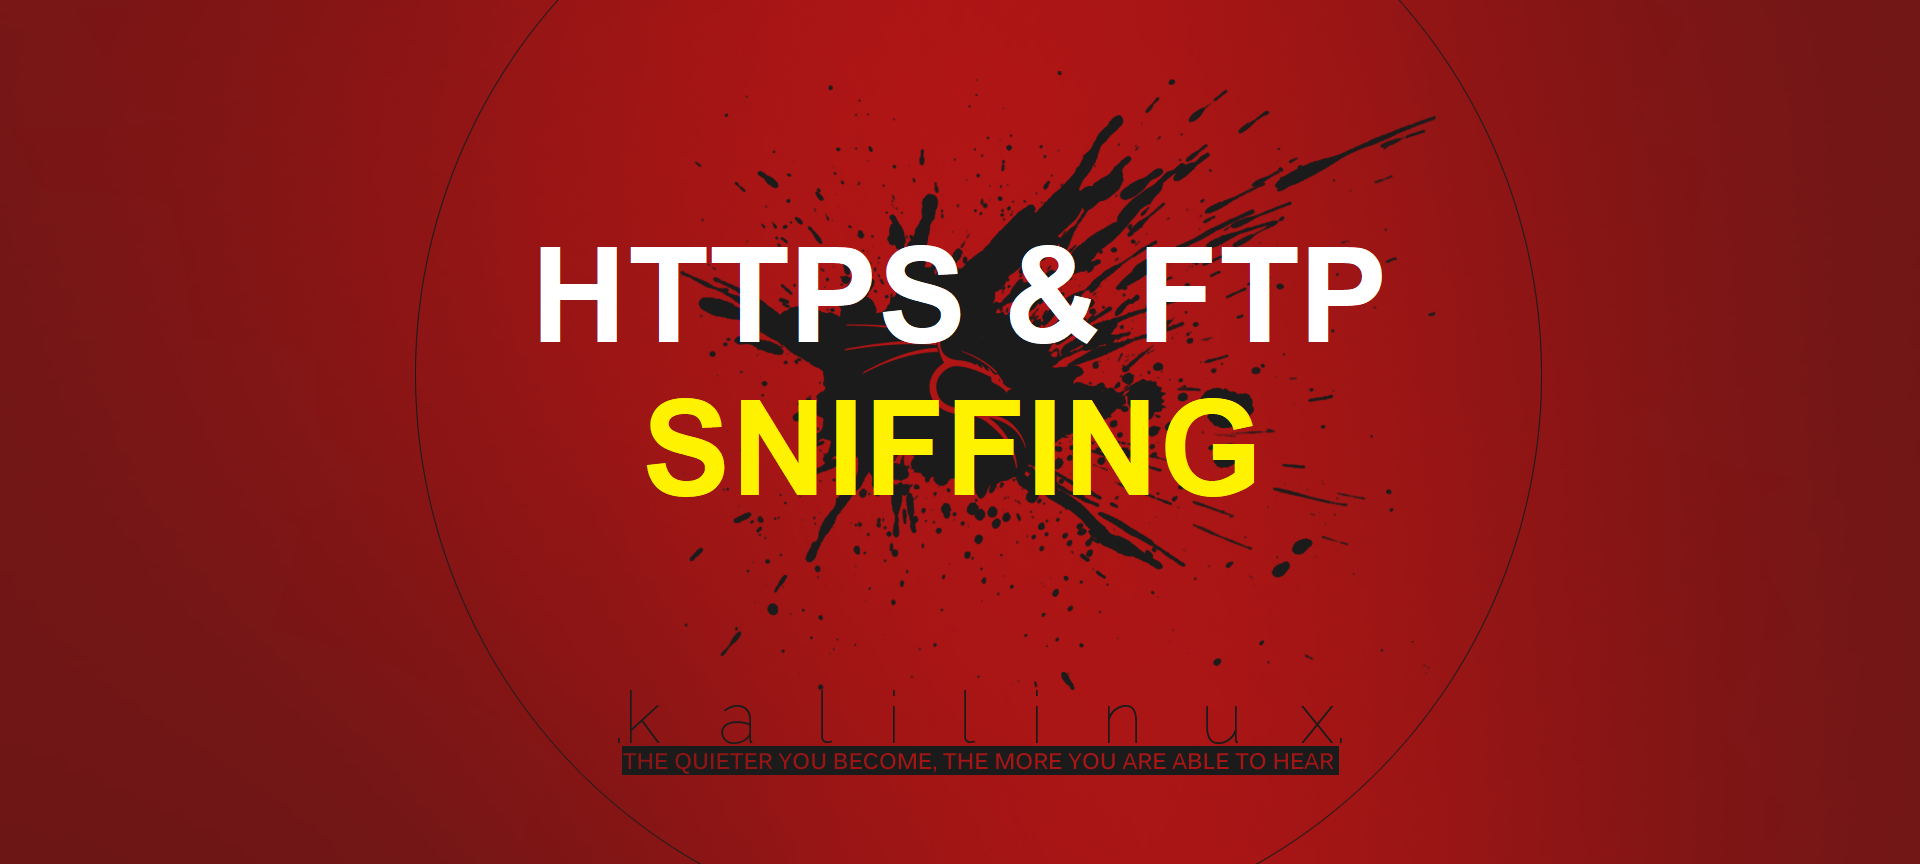 Sniff HTTPS/FTP Packets using SSLSTRIP and DSNIFF - ARP